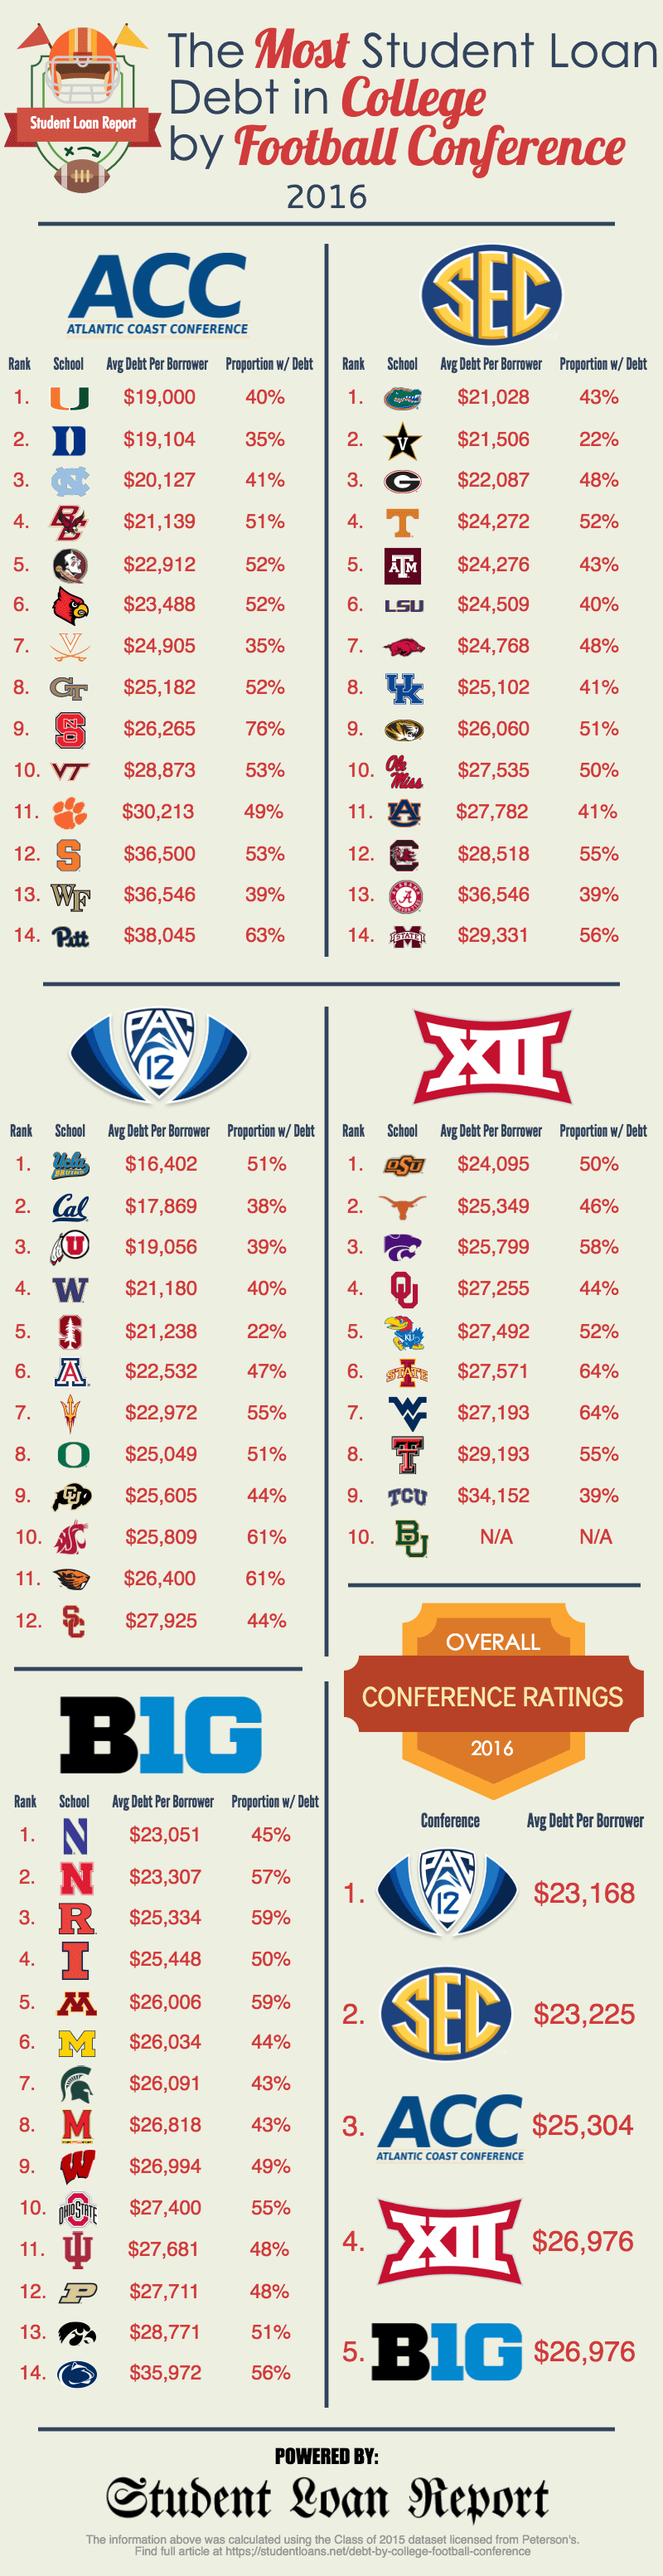 Average College Student Loan Debt by Football Conference